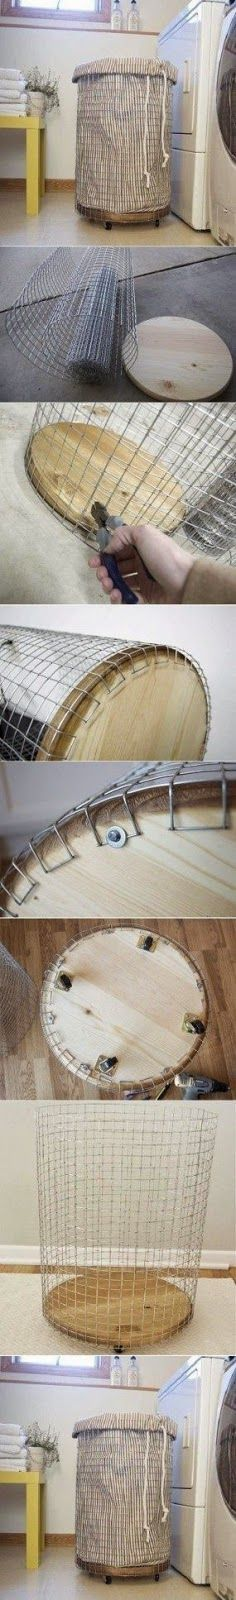 DIY Wire Laundry basket with removable liner/laundry bag.